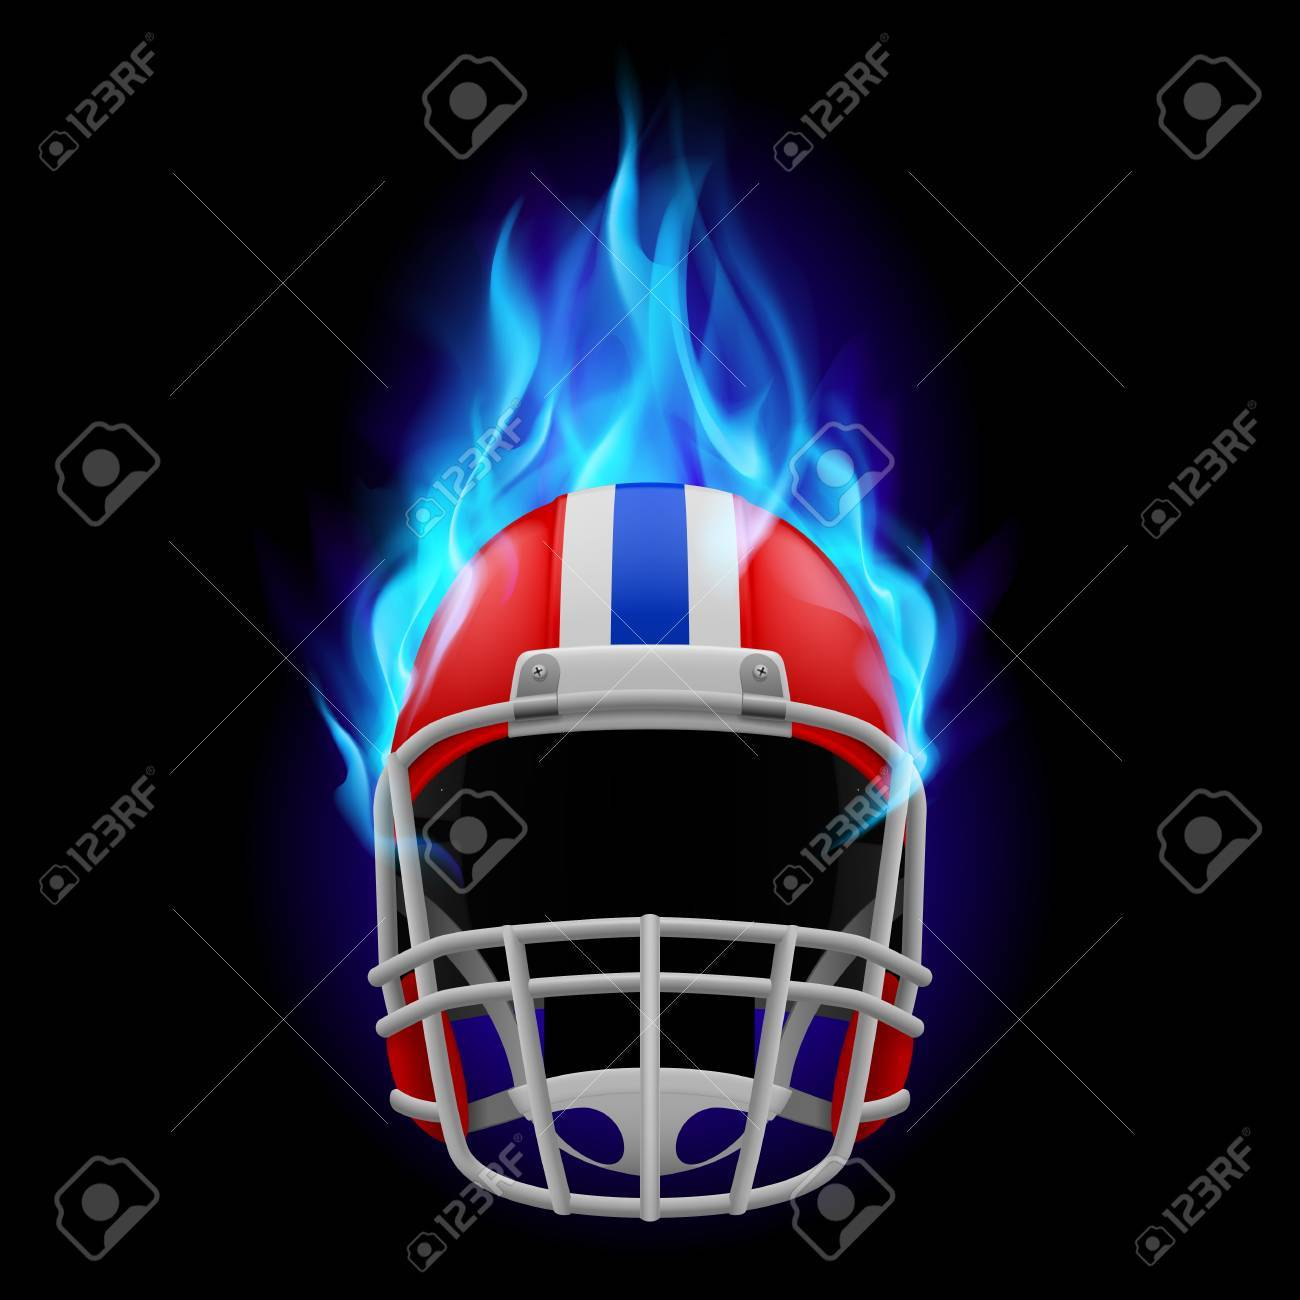 Red Football Burning Helmet On A Black Background Royalty Free Cliparts Vectors And Stock Illustration Image 35026789